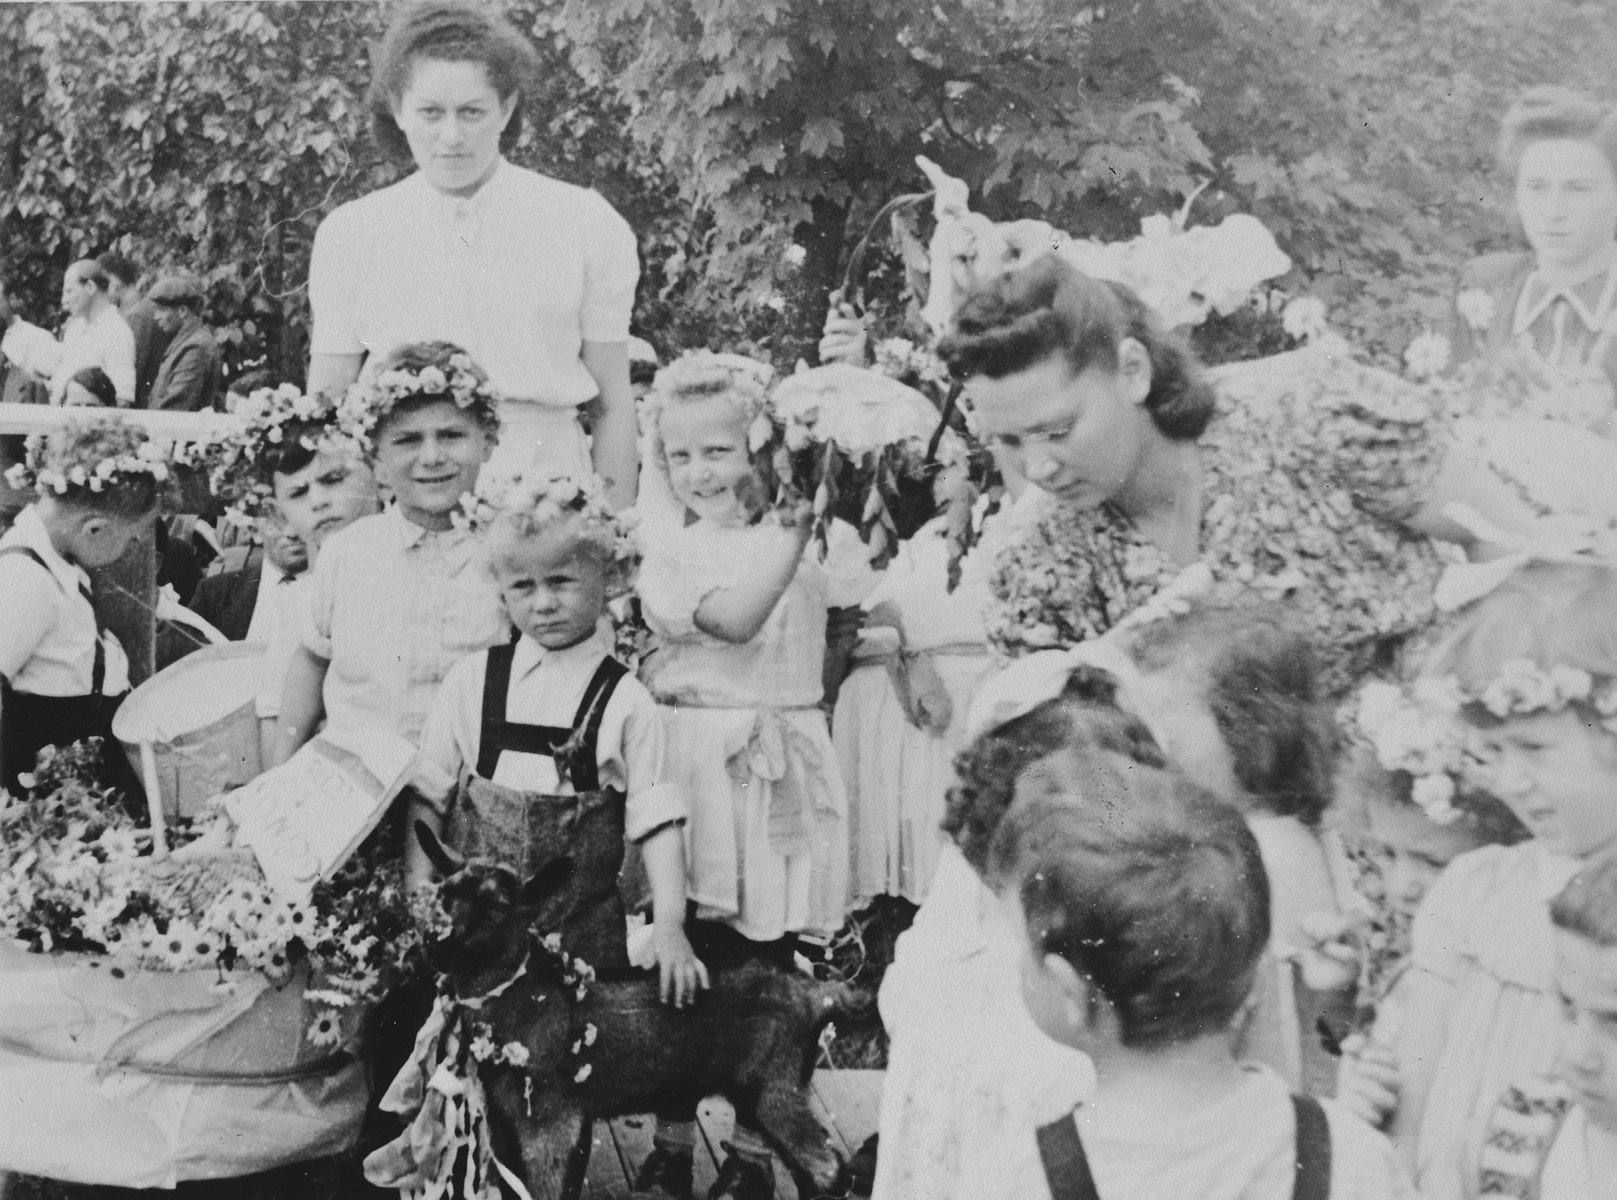 Children wearing wreaths of flowers celebrate Shavuot in a Jewish kindergarten in Lodz.  Among those pictured is their teacher, Rachel Grynglas (leaning over slightly in the center, left).